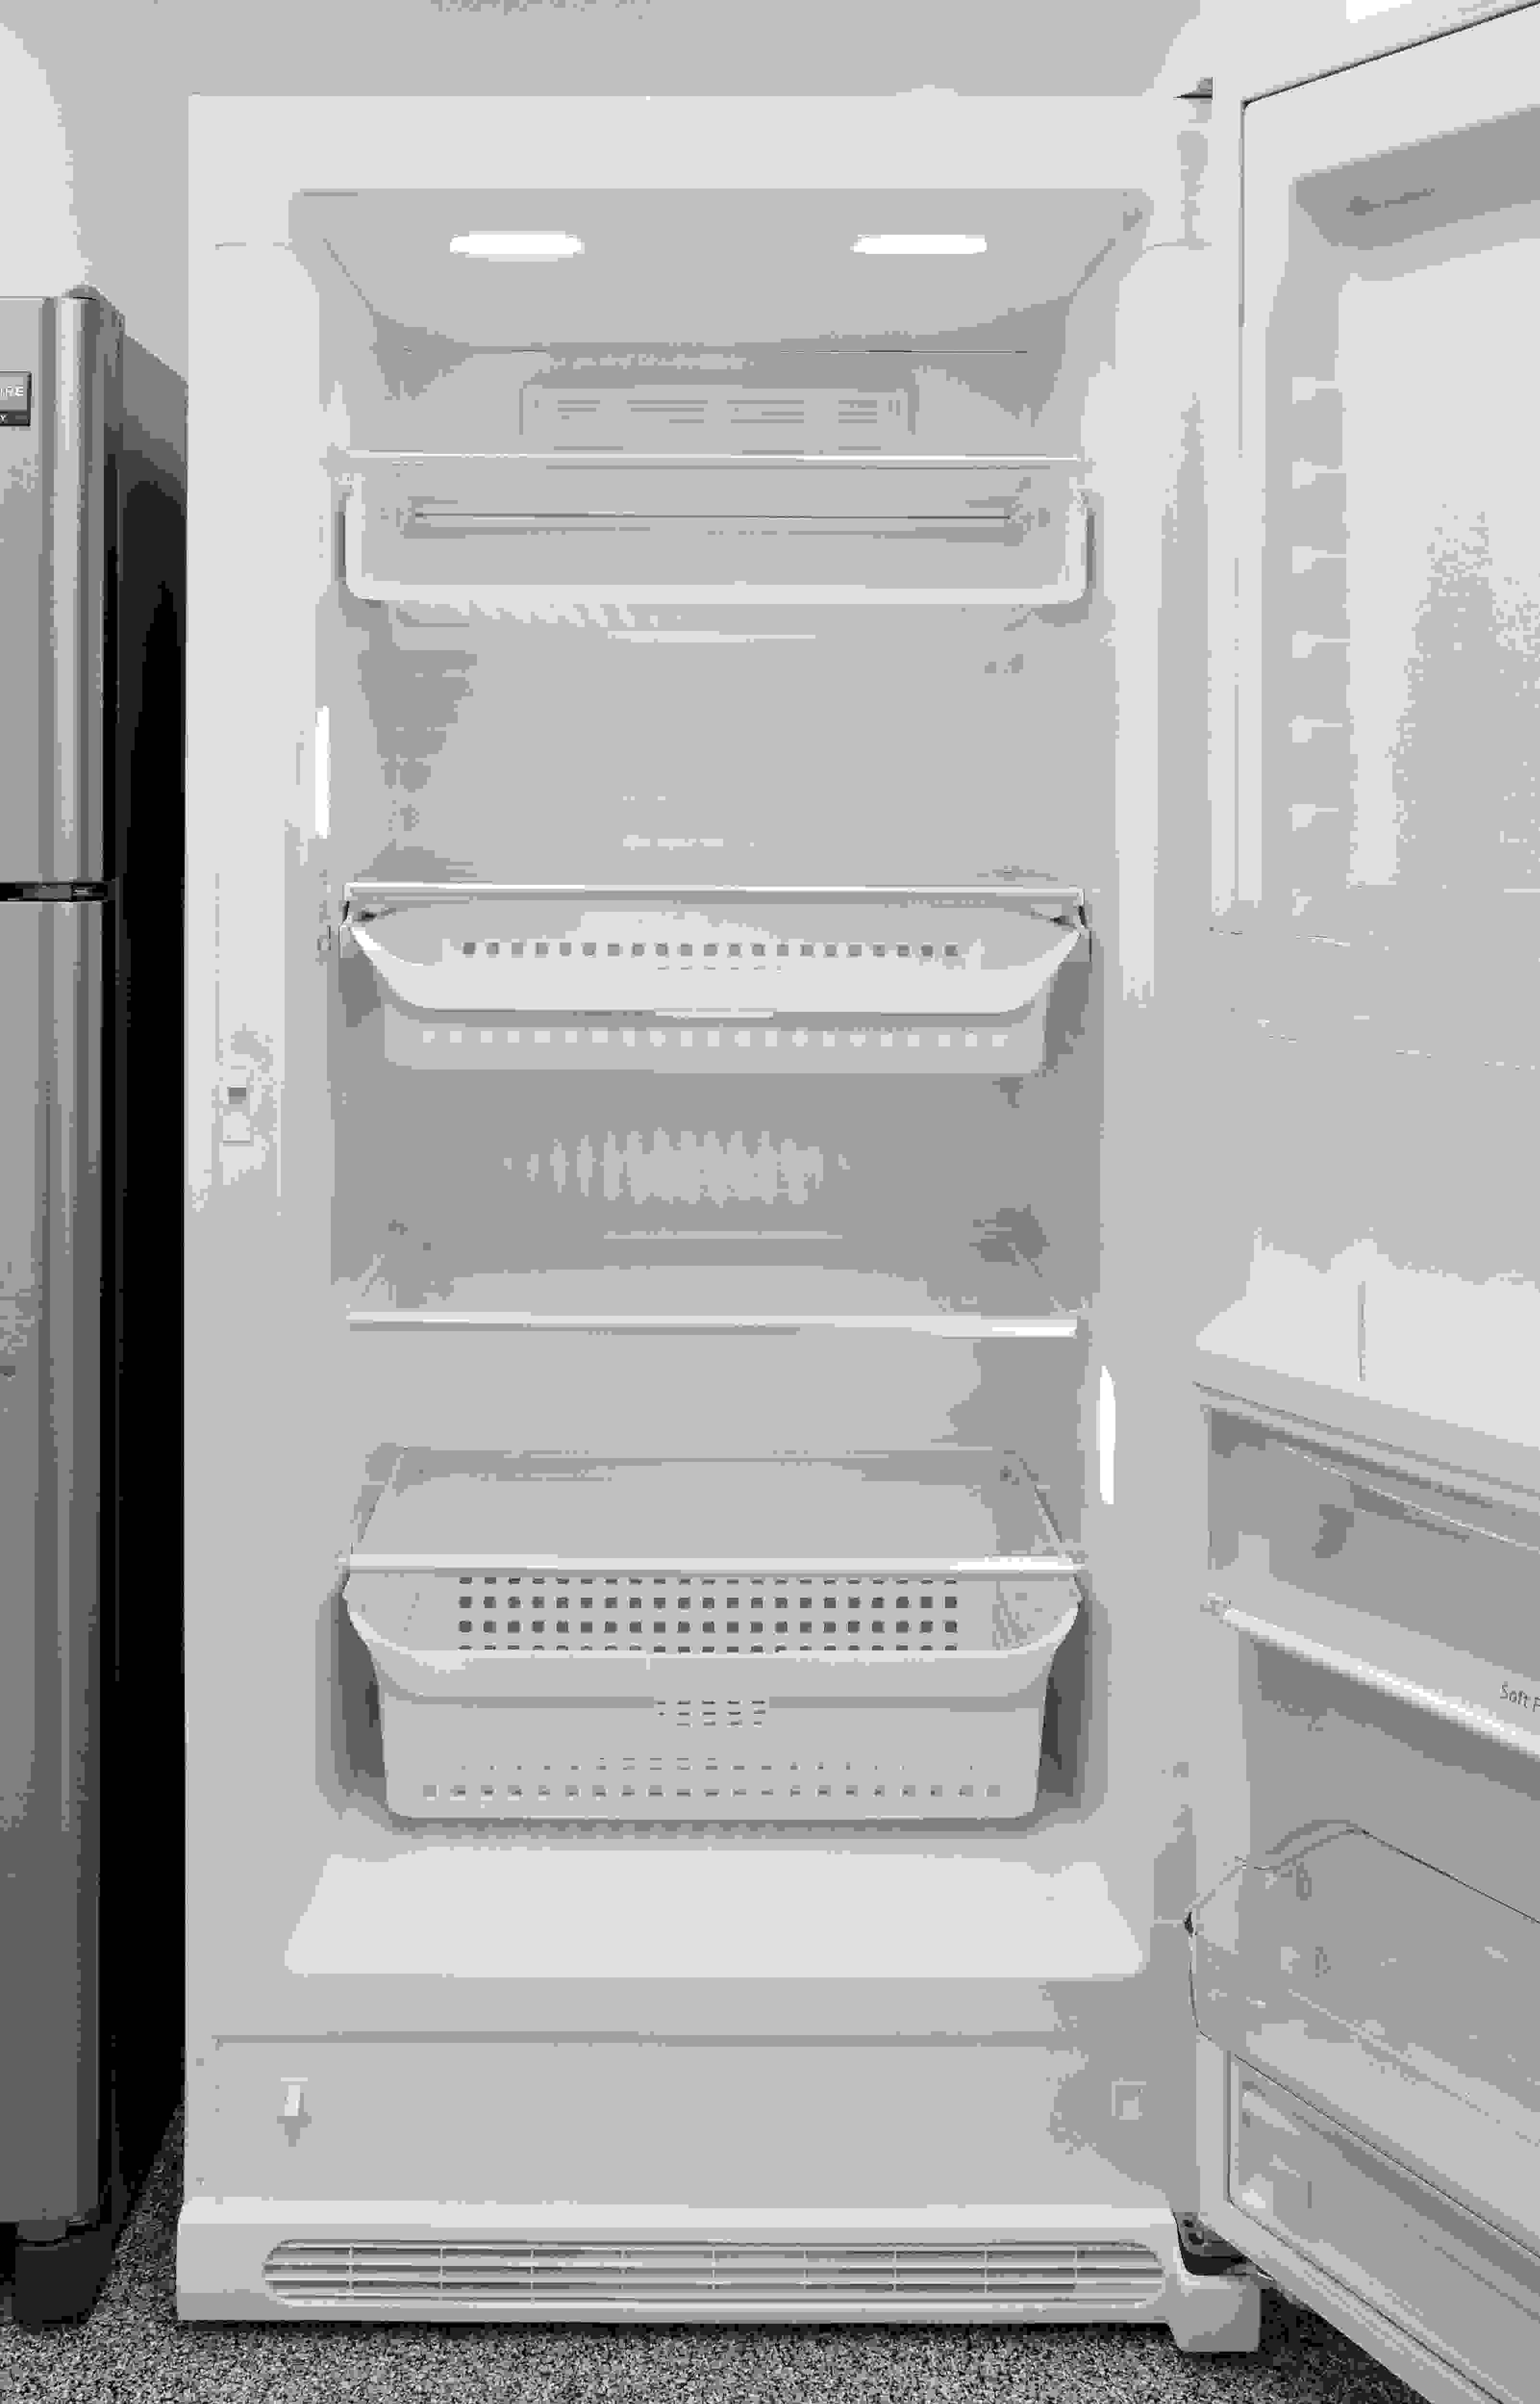 Lots of shelves and sliding drawers inside the Frigidaire FFFH21F6QW make it easy to keep track of your food.